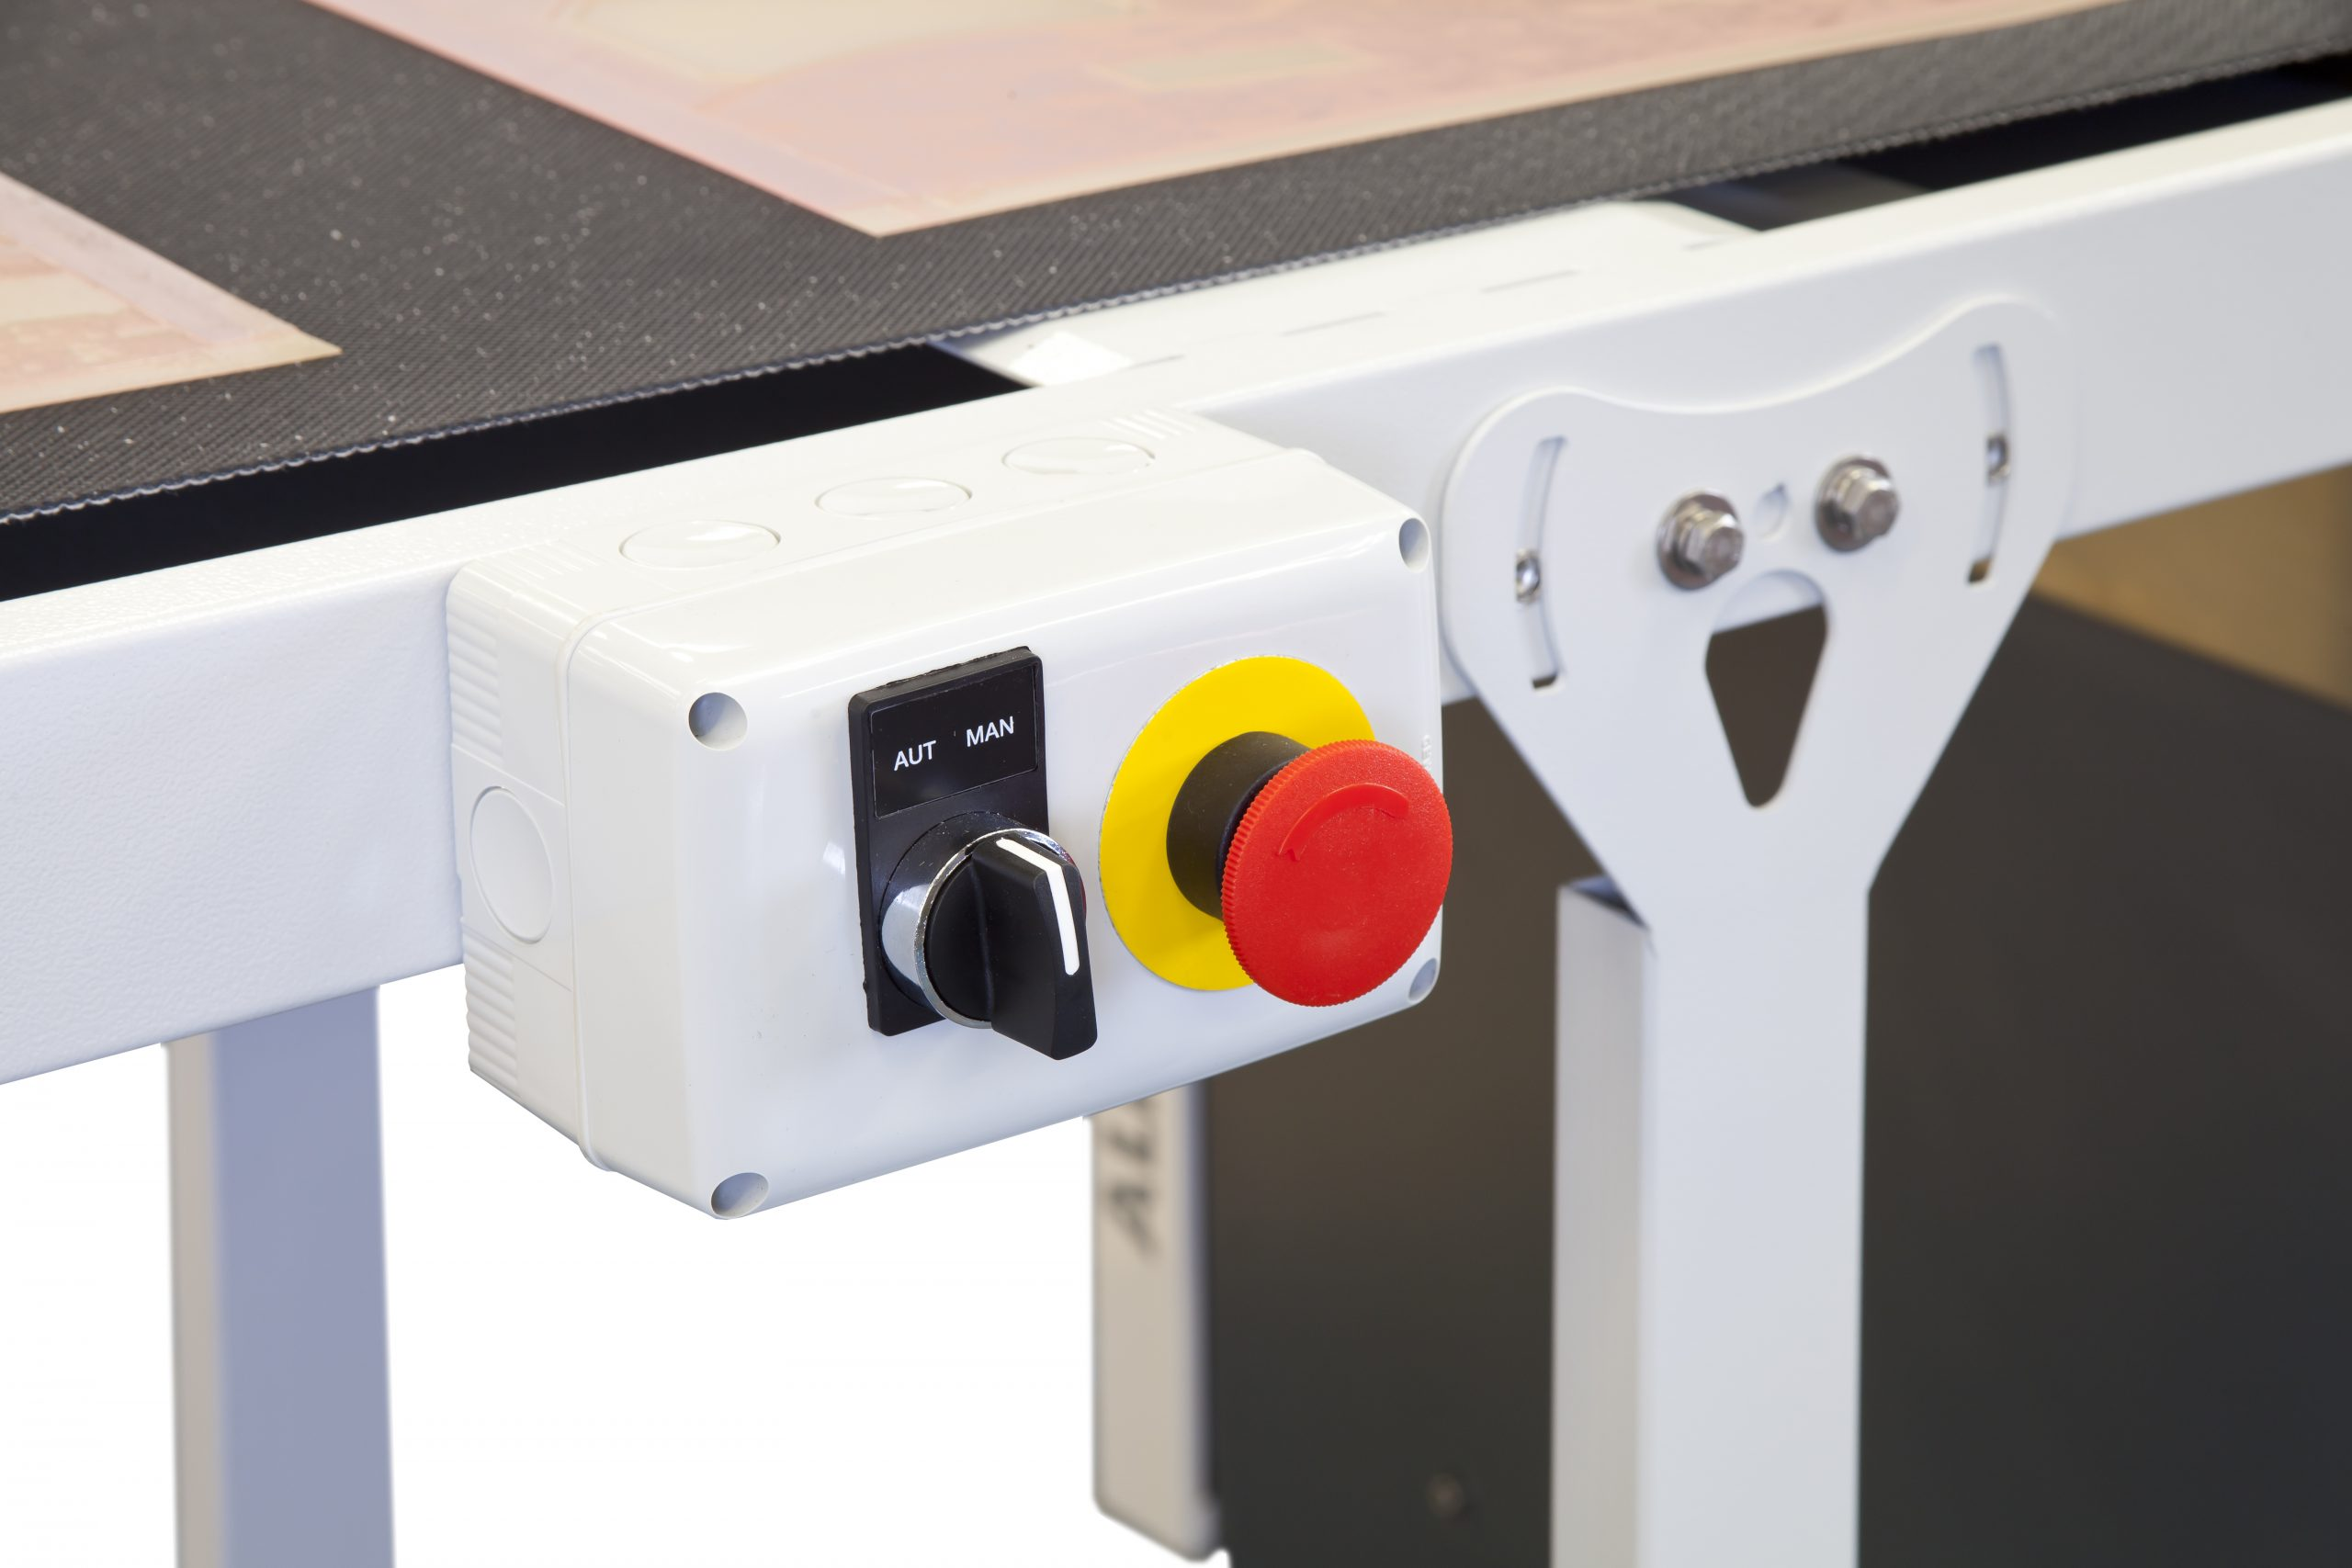 A close up image of the PCX System from Alphasonics.